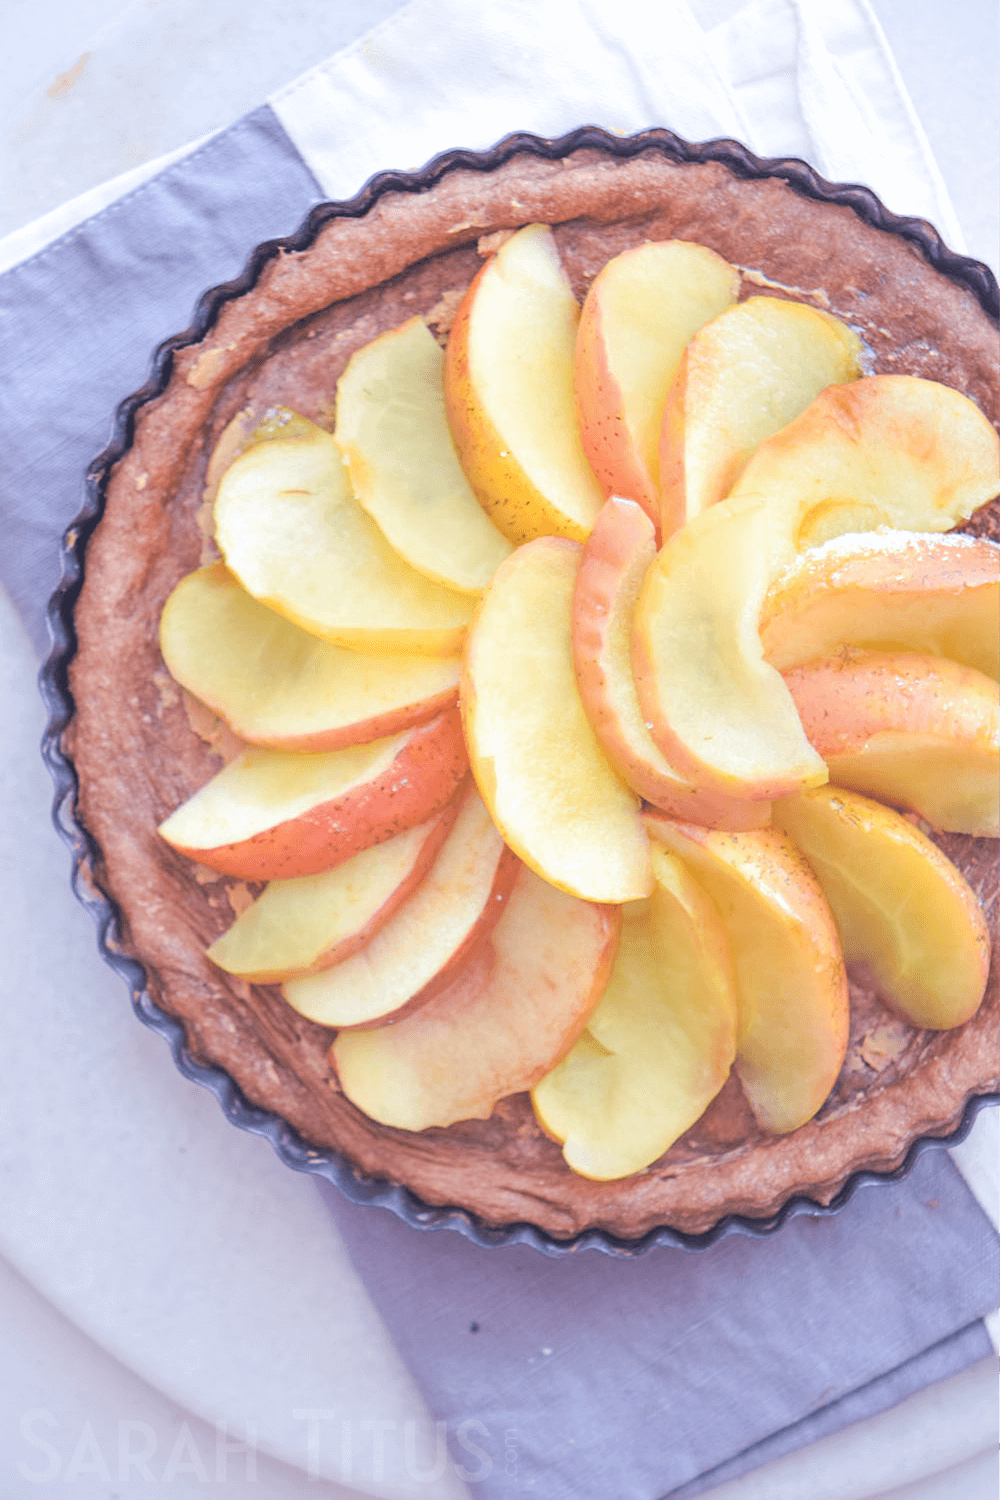 The beautifully finished circular design of apple slices on top of the pie